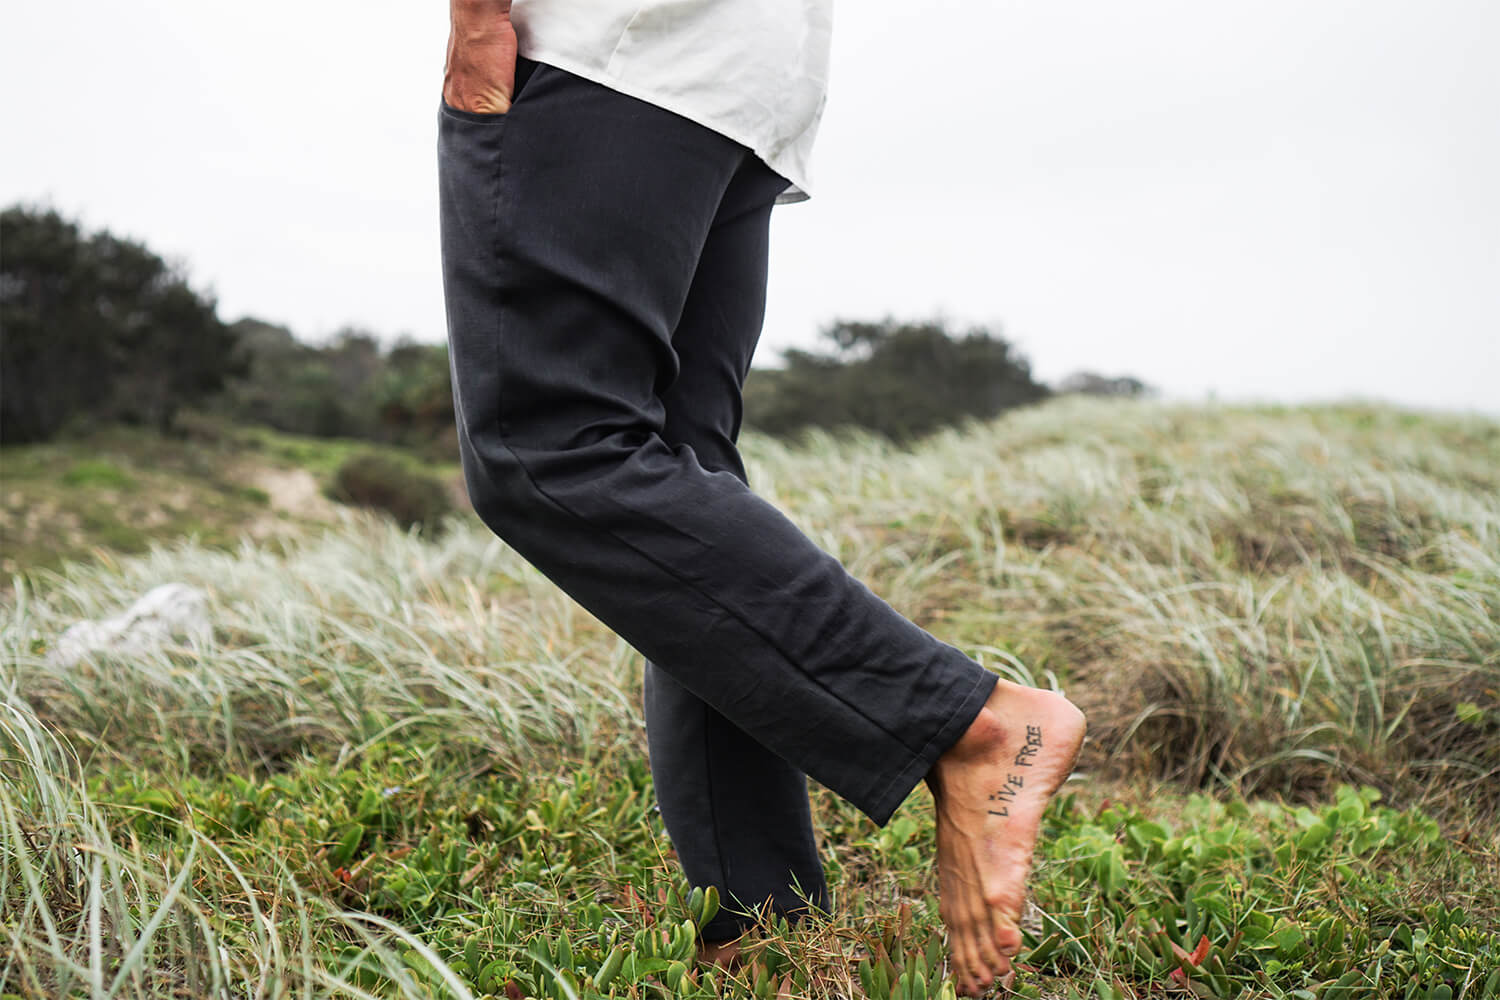 Tasi Travels' Men's Charcoal Roamer Pants are handmade from a sustainable blend of Tencel & Hemp